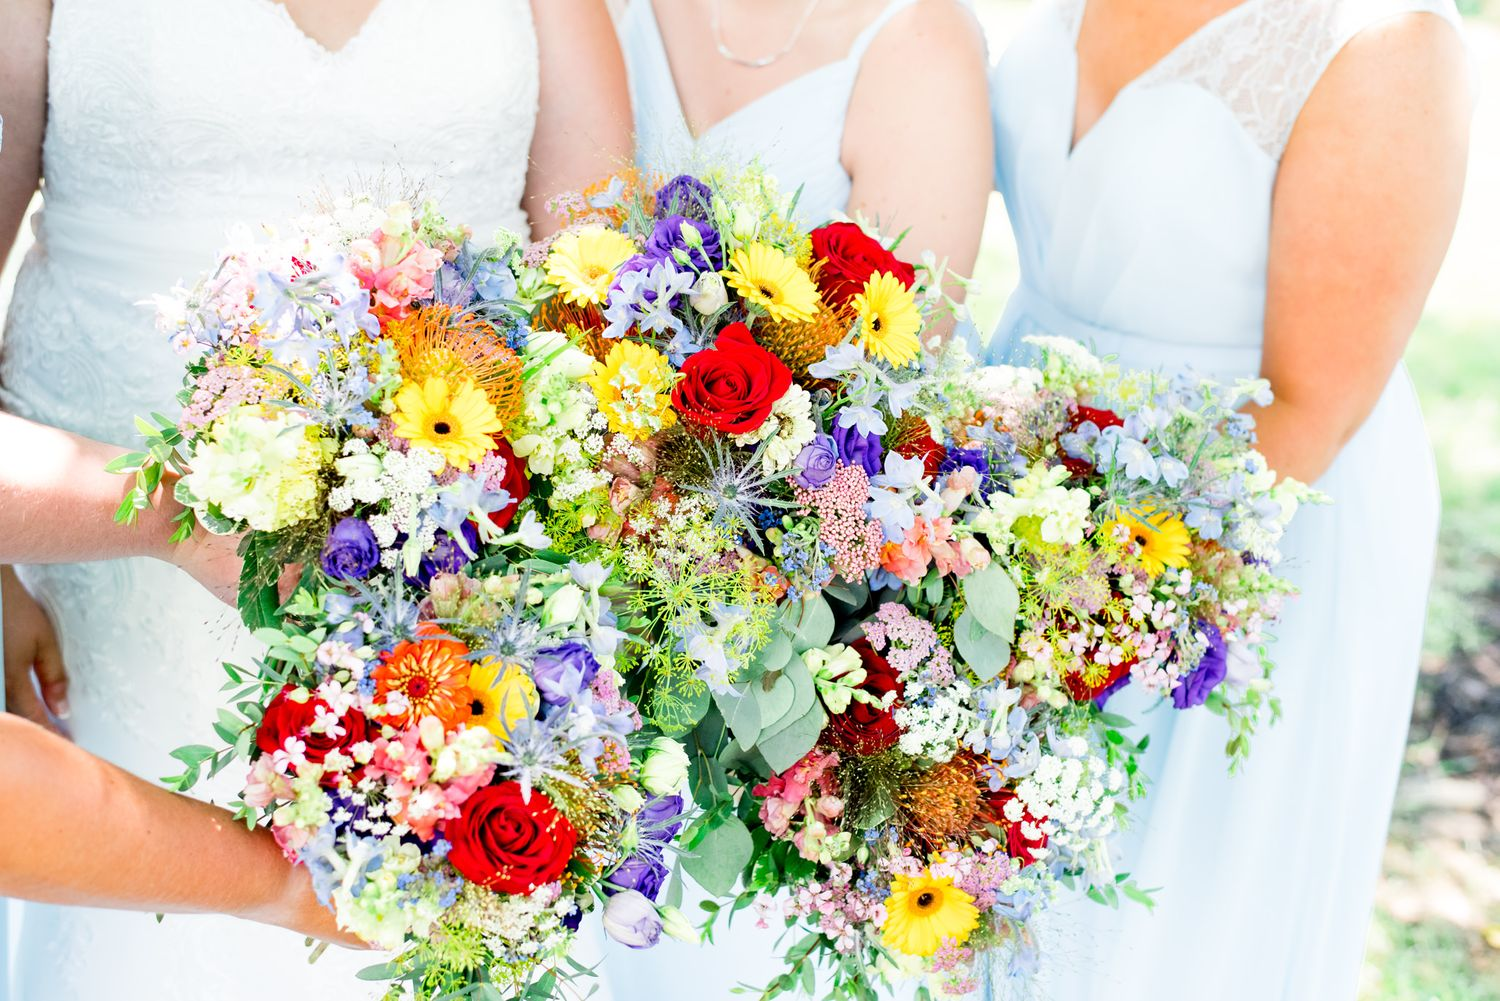 bridesmaids in blue dresses holding rainbow wedding bouquets